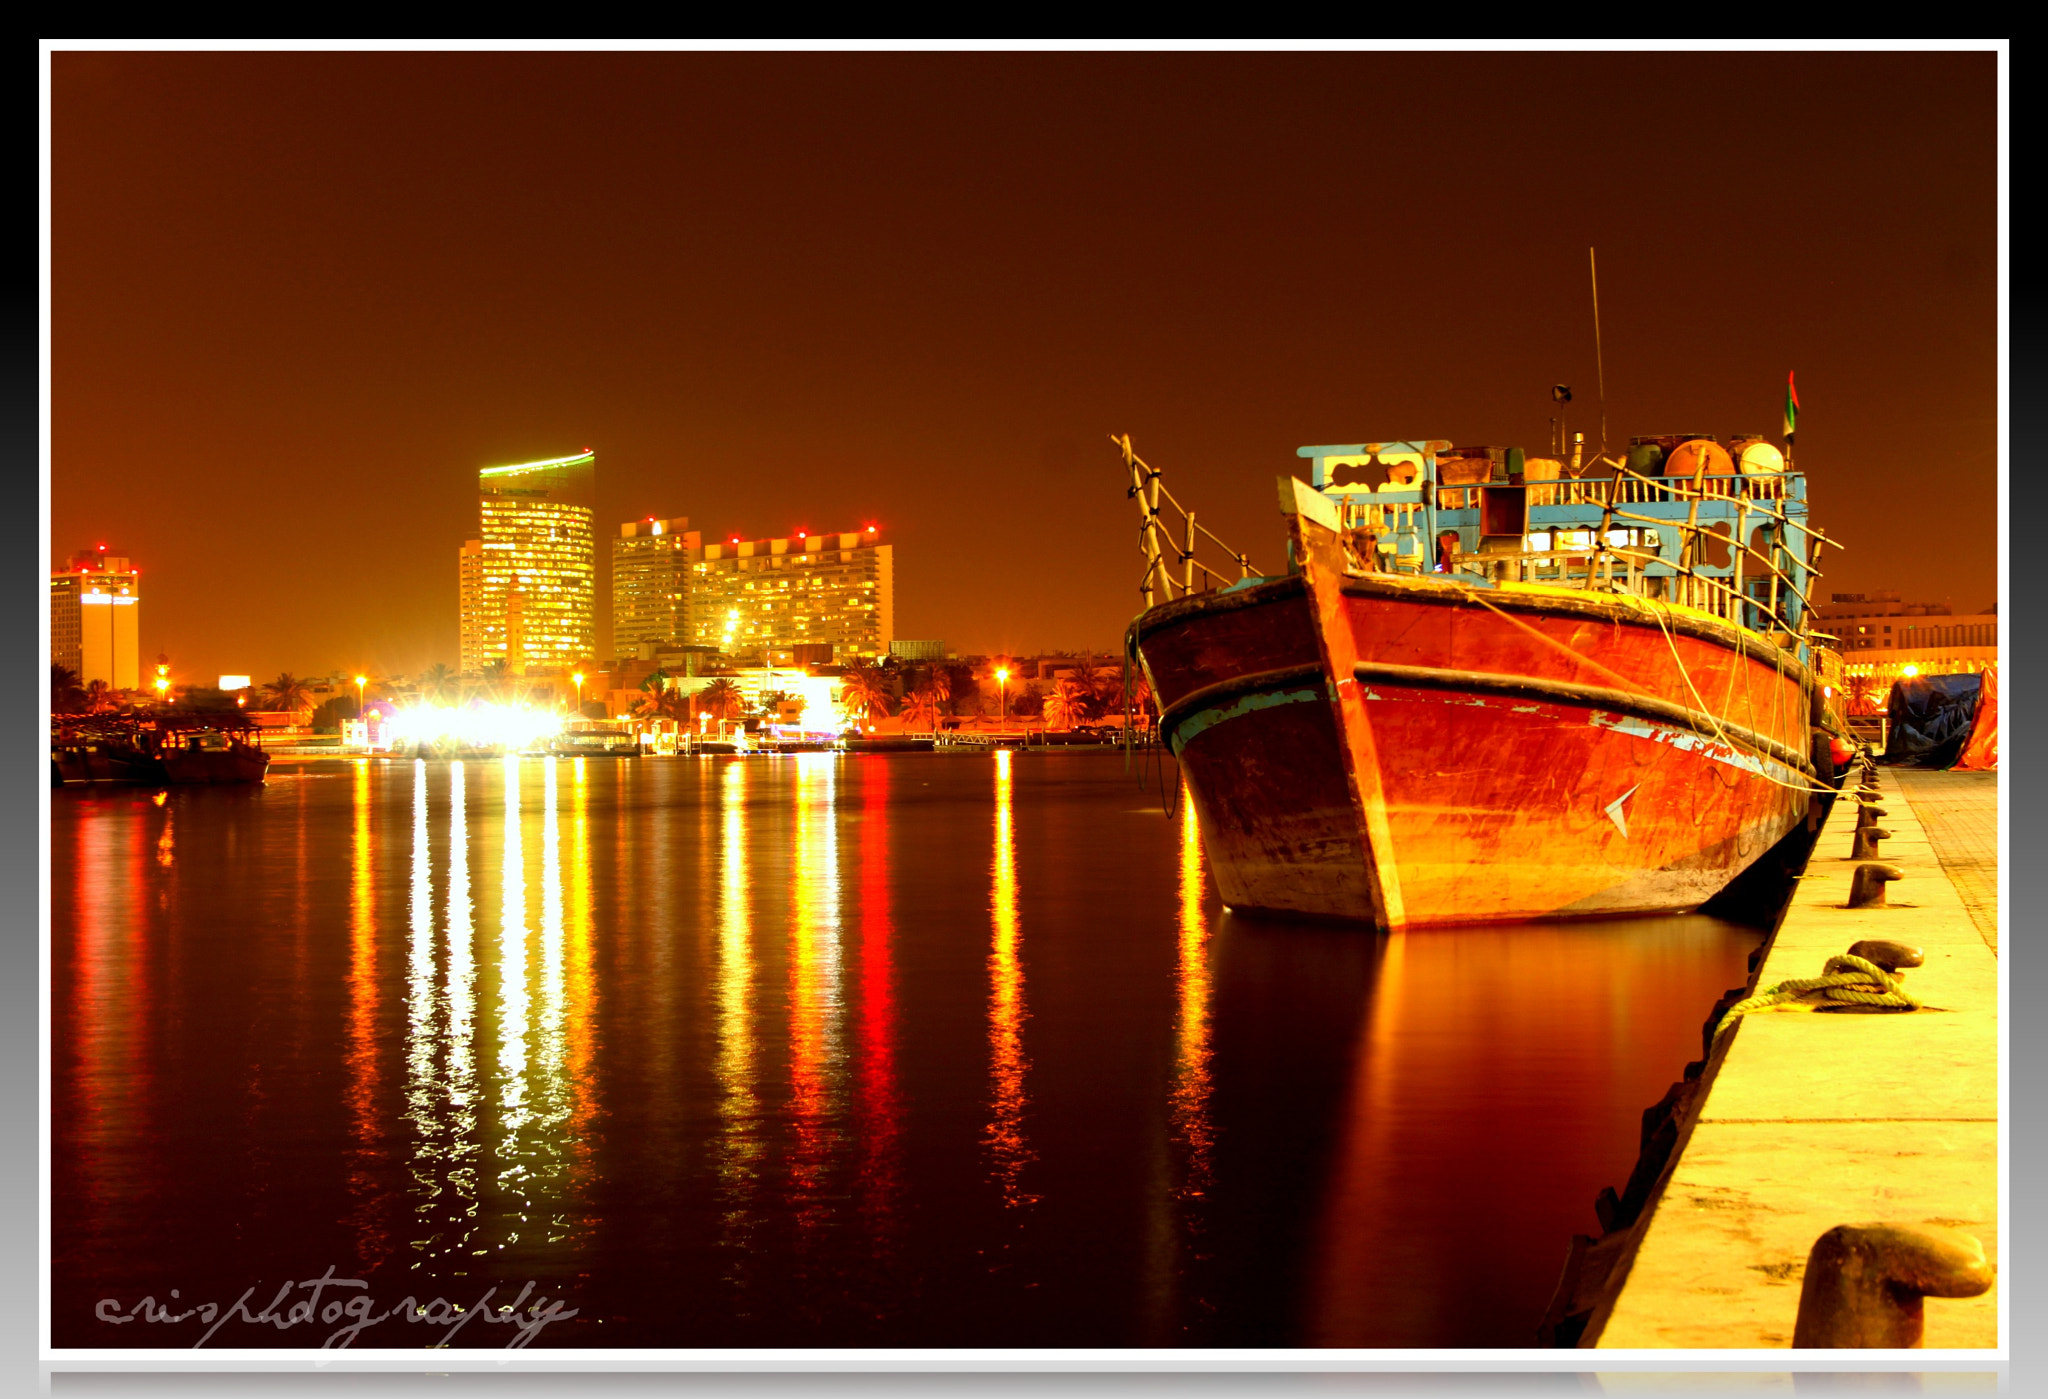 Photograph night boat by Cristeto Gutas on 500px